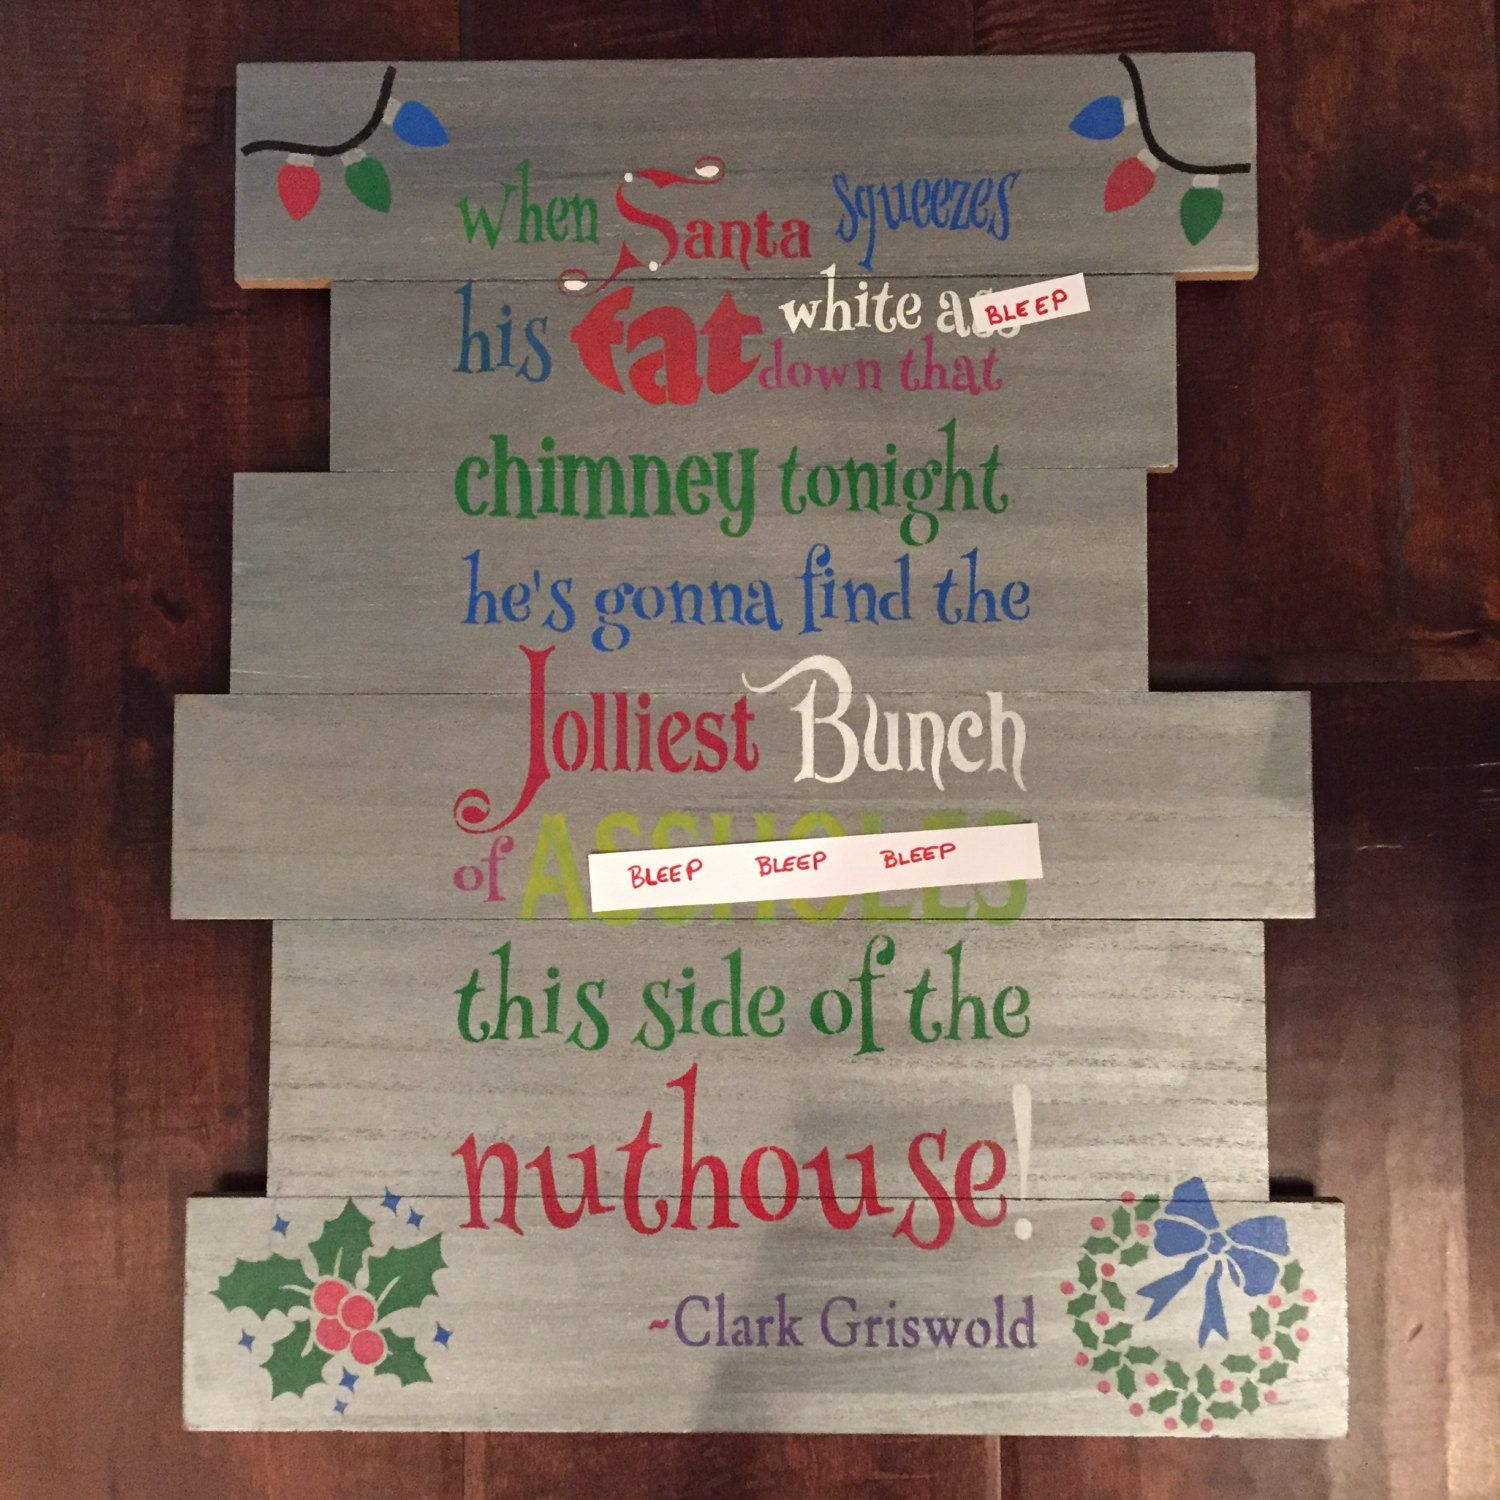 Christmas wood plank decoration with Clark Griswold quote